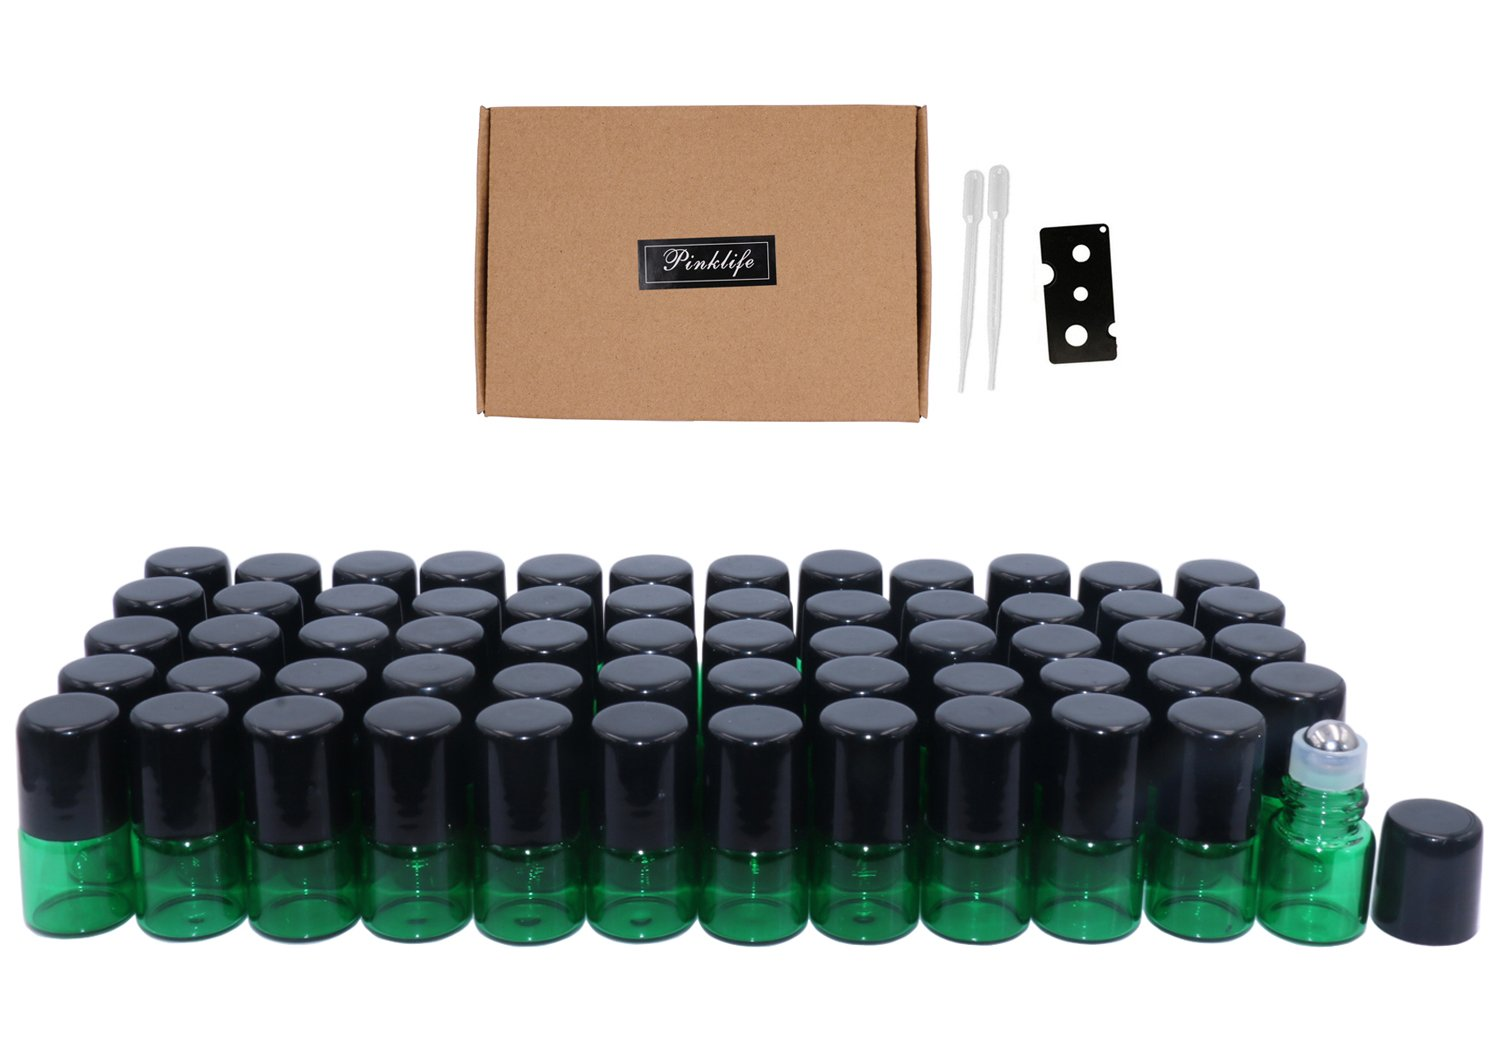 Pinklife 1ml(1/4 Dram) Glass Roller Bottles,60 Pcs Mini Essential Oil Roll on Glass Bottle Empty Aromatherapy Perfume Sample Vials with Metal Roller Ball,Opener and 3ml Dropper Included(Green)